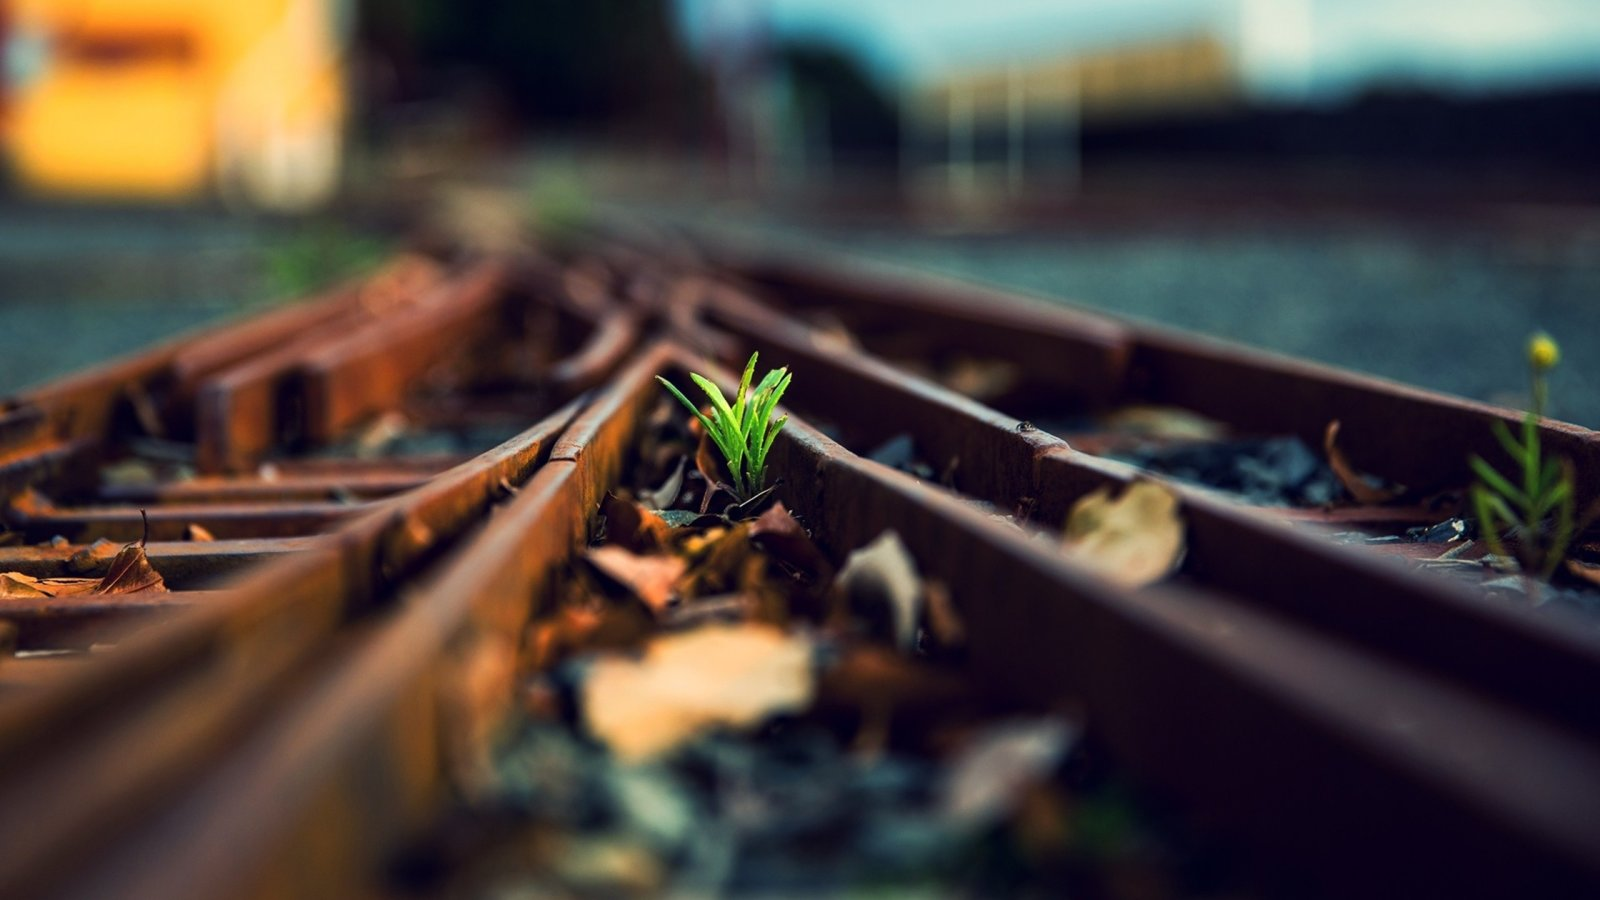 Train-Track-High-Resolution-Wallpapers.jpg